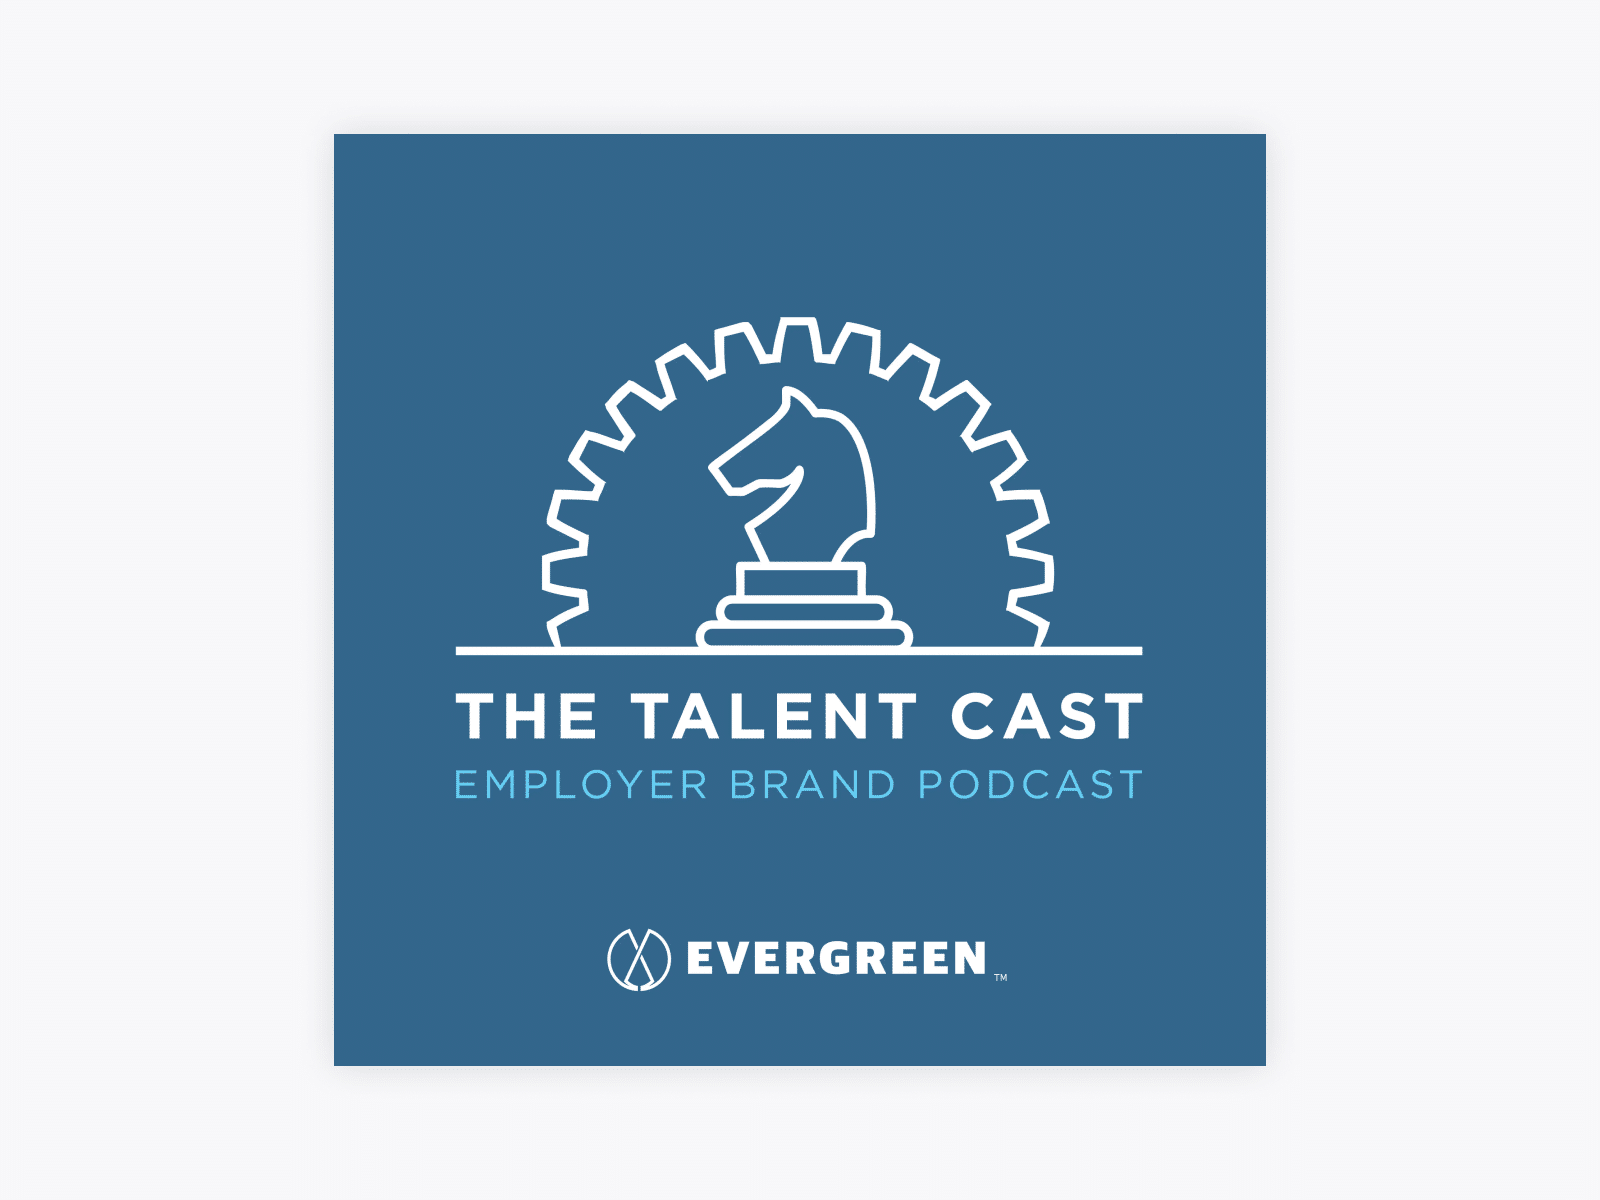 Cover art for the talent cast